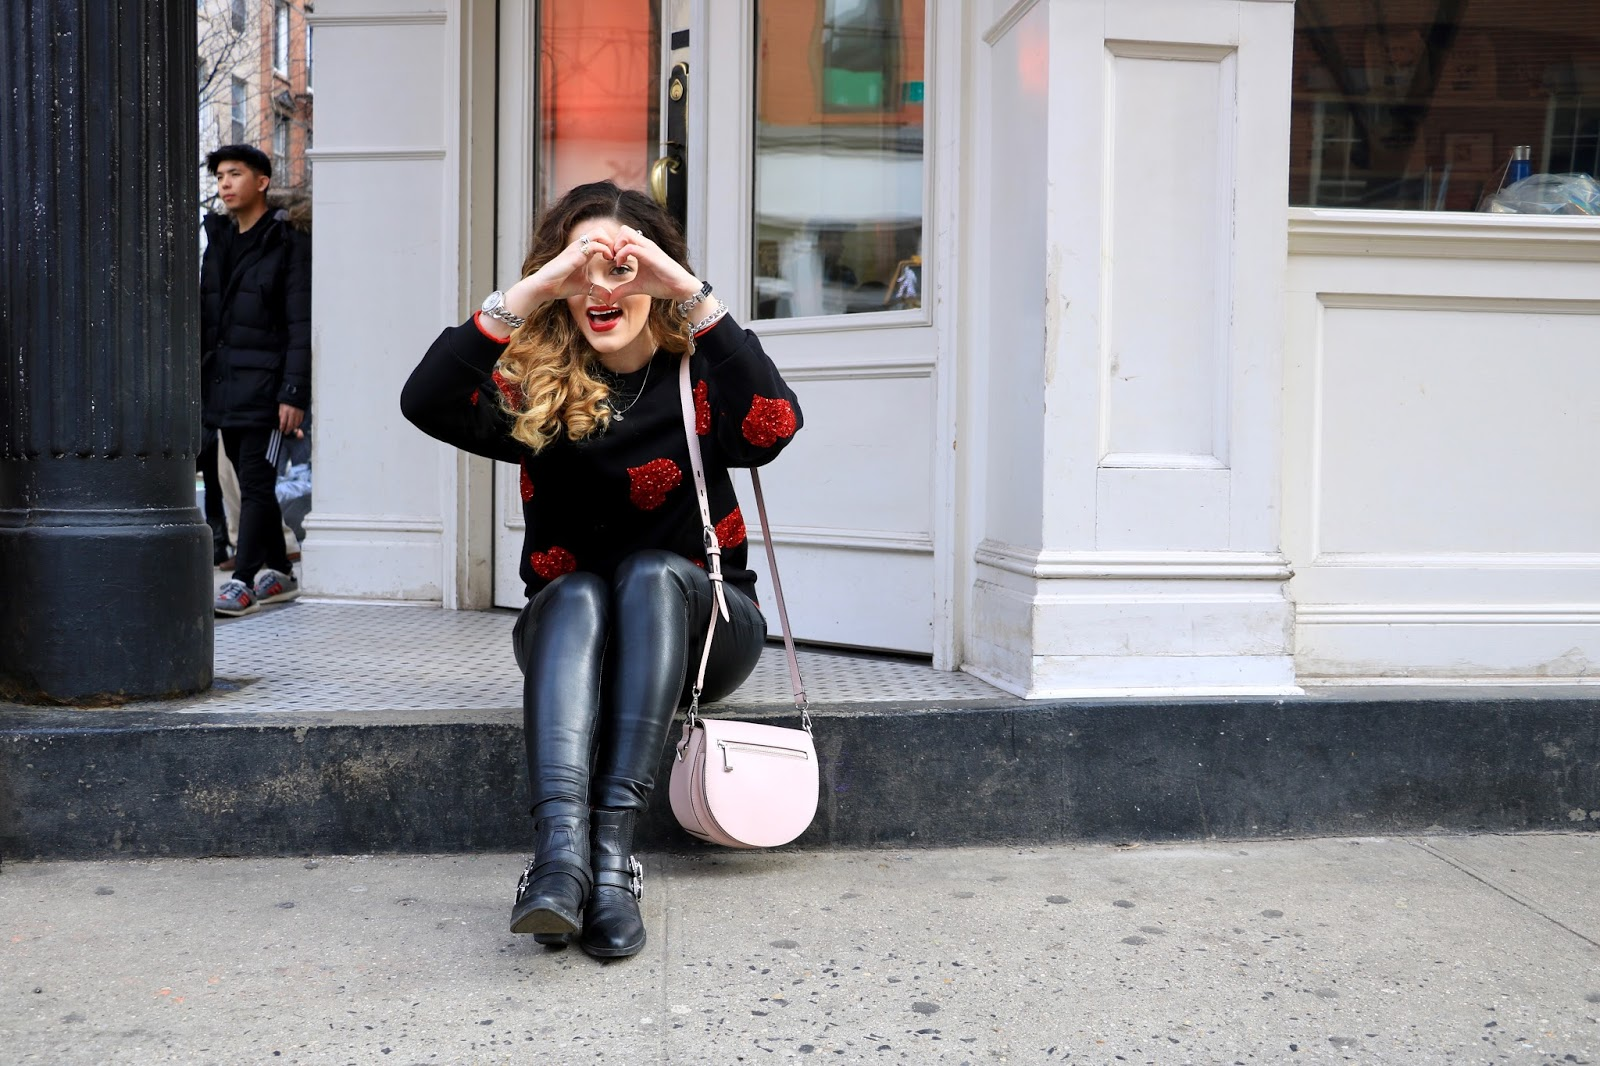 Nyc fashion blogger Kathleen Harper wearing a comfy Valentine's Day outfit